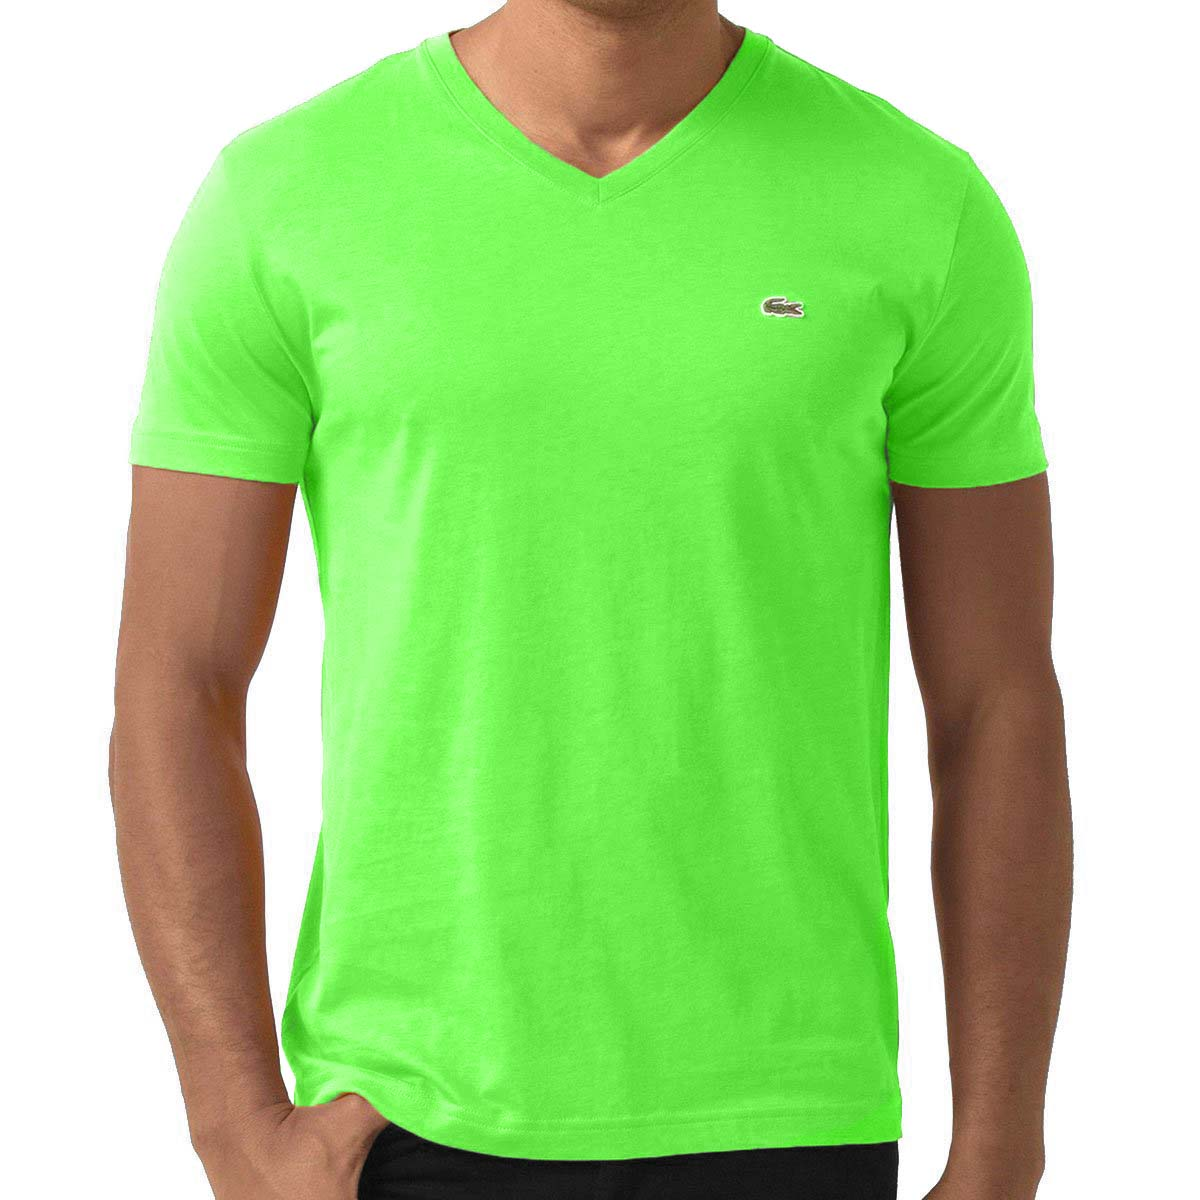 Lacoste men 39 s short sleeve v neck pima cotton t shirt ebay for Pima cotton tee shirts